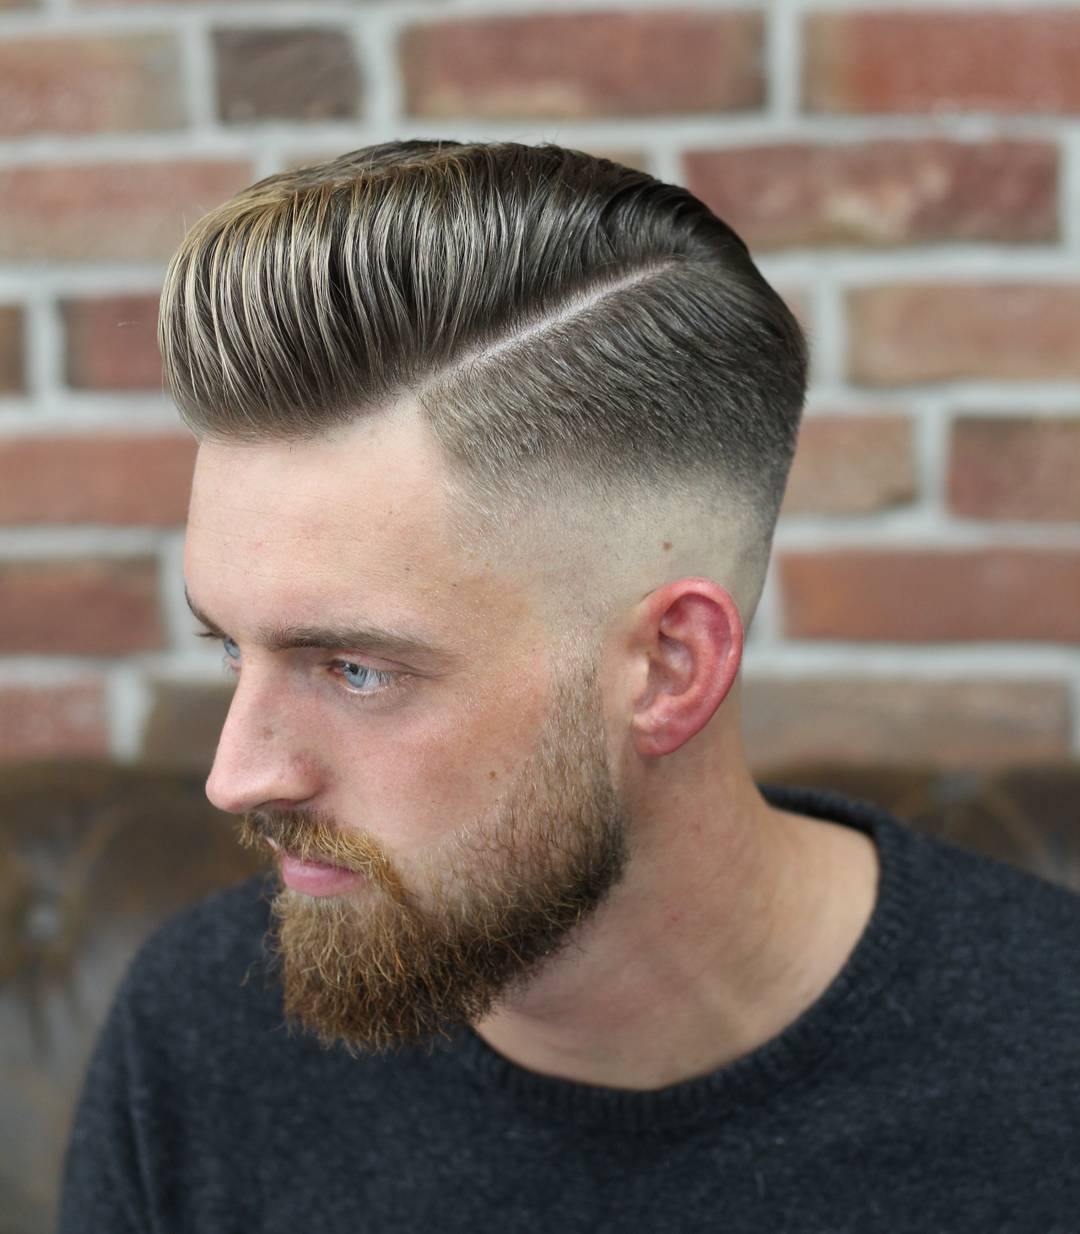 27 cool hairstyles for men 2017 barberdjirlauw cool pompadour hairstyle mens haircut urmus